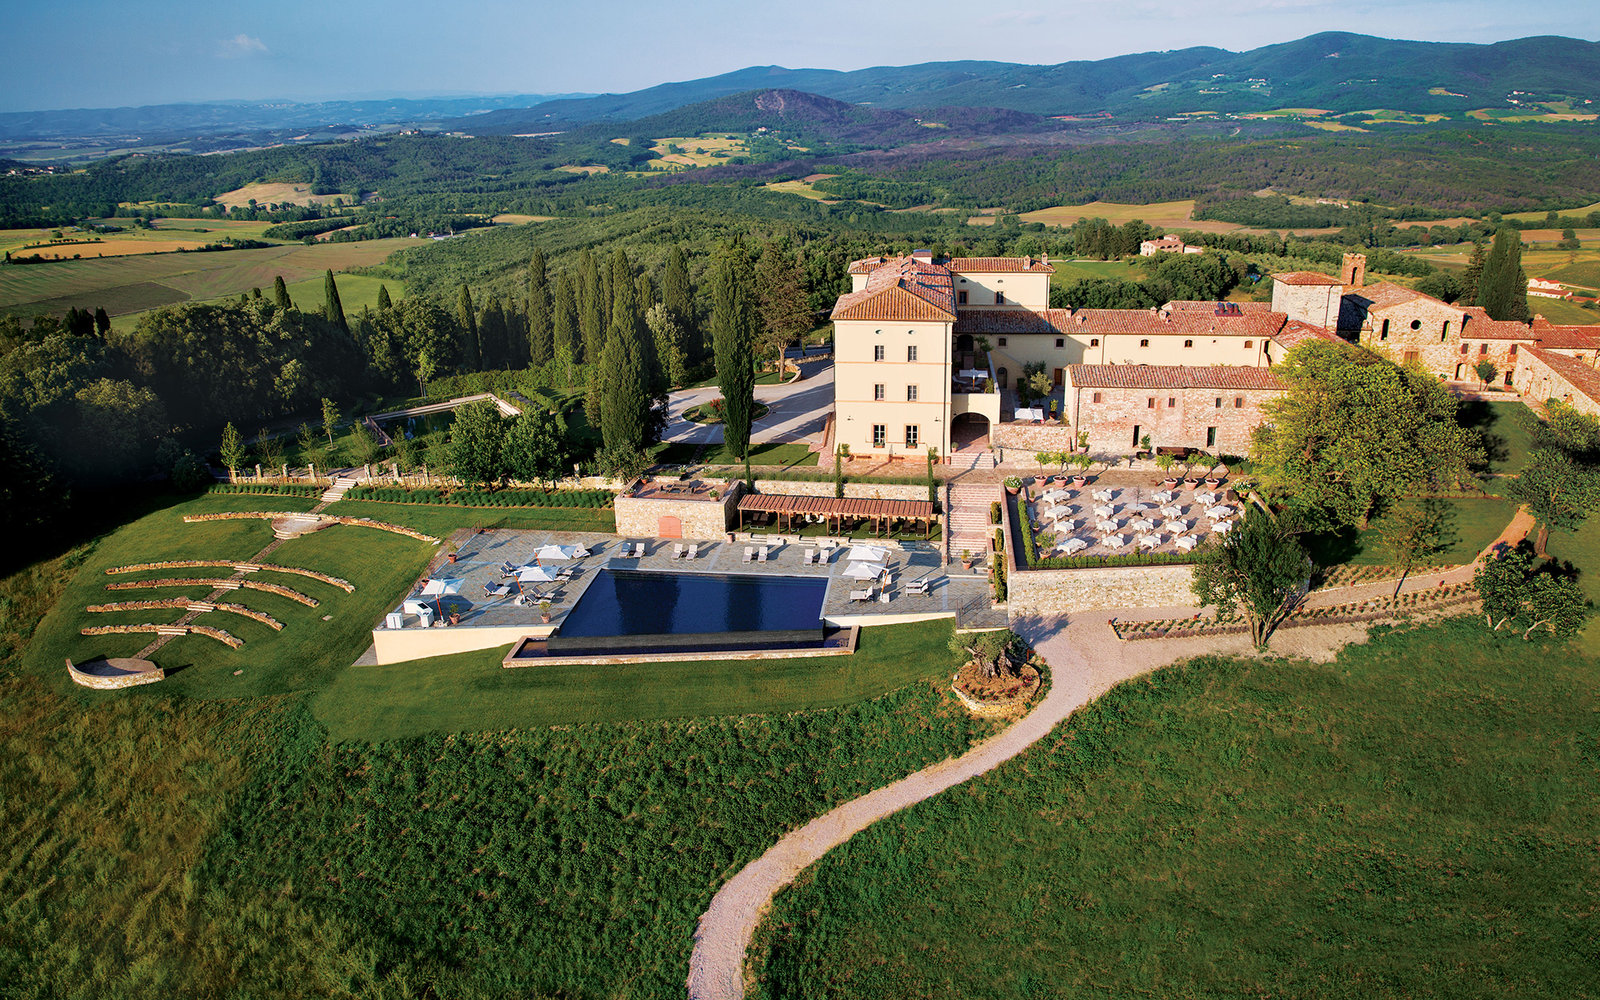 The Most Romantic Hotel in Europe | Travel + Leisure